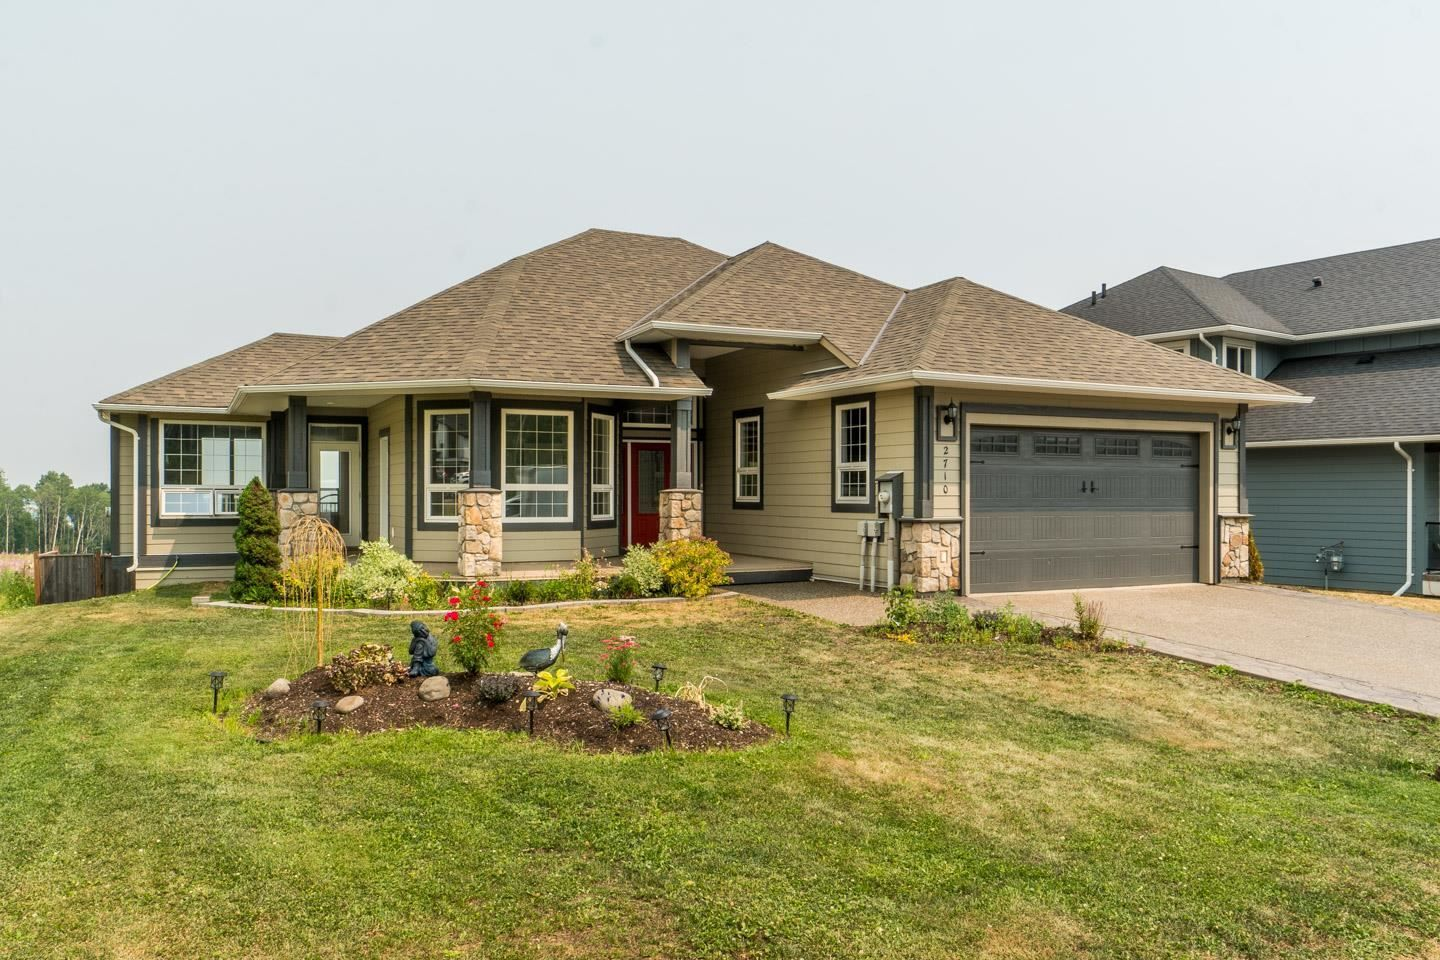 """Main Photo: 2710 CHANCELLOR Boulevard in Prince George: Charella/Starlane House for sale in """"University Heights"""" (PG City South (Zone 74))  : MLS®# R2600284"""